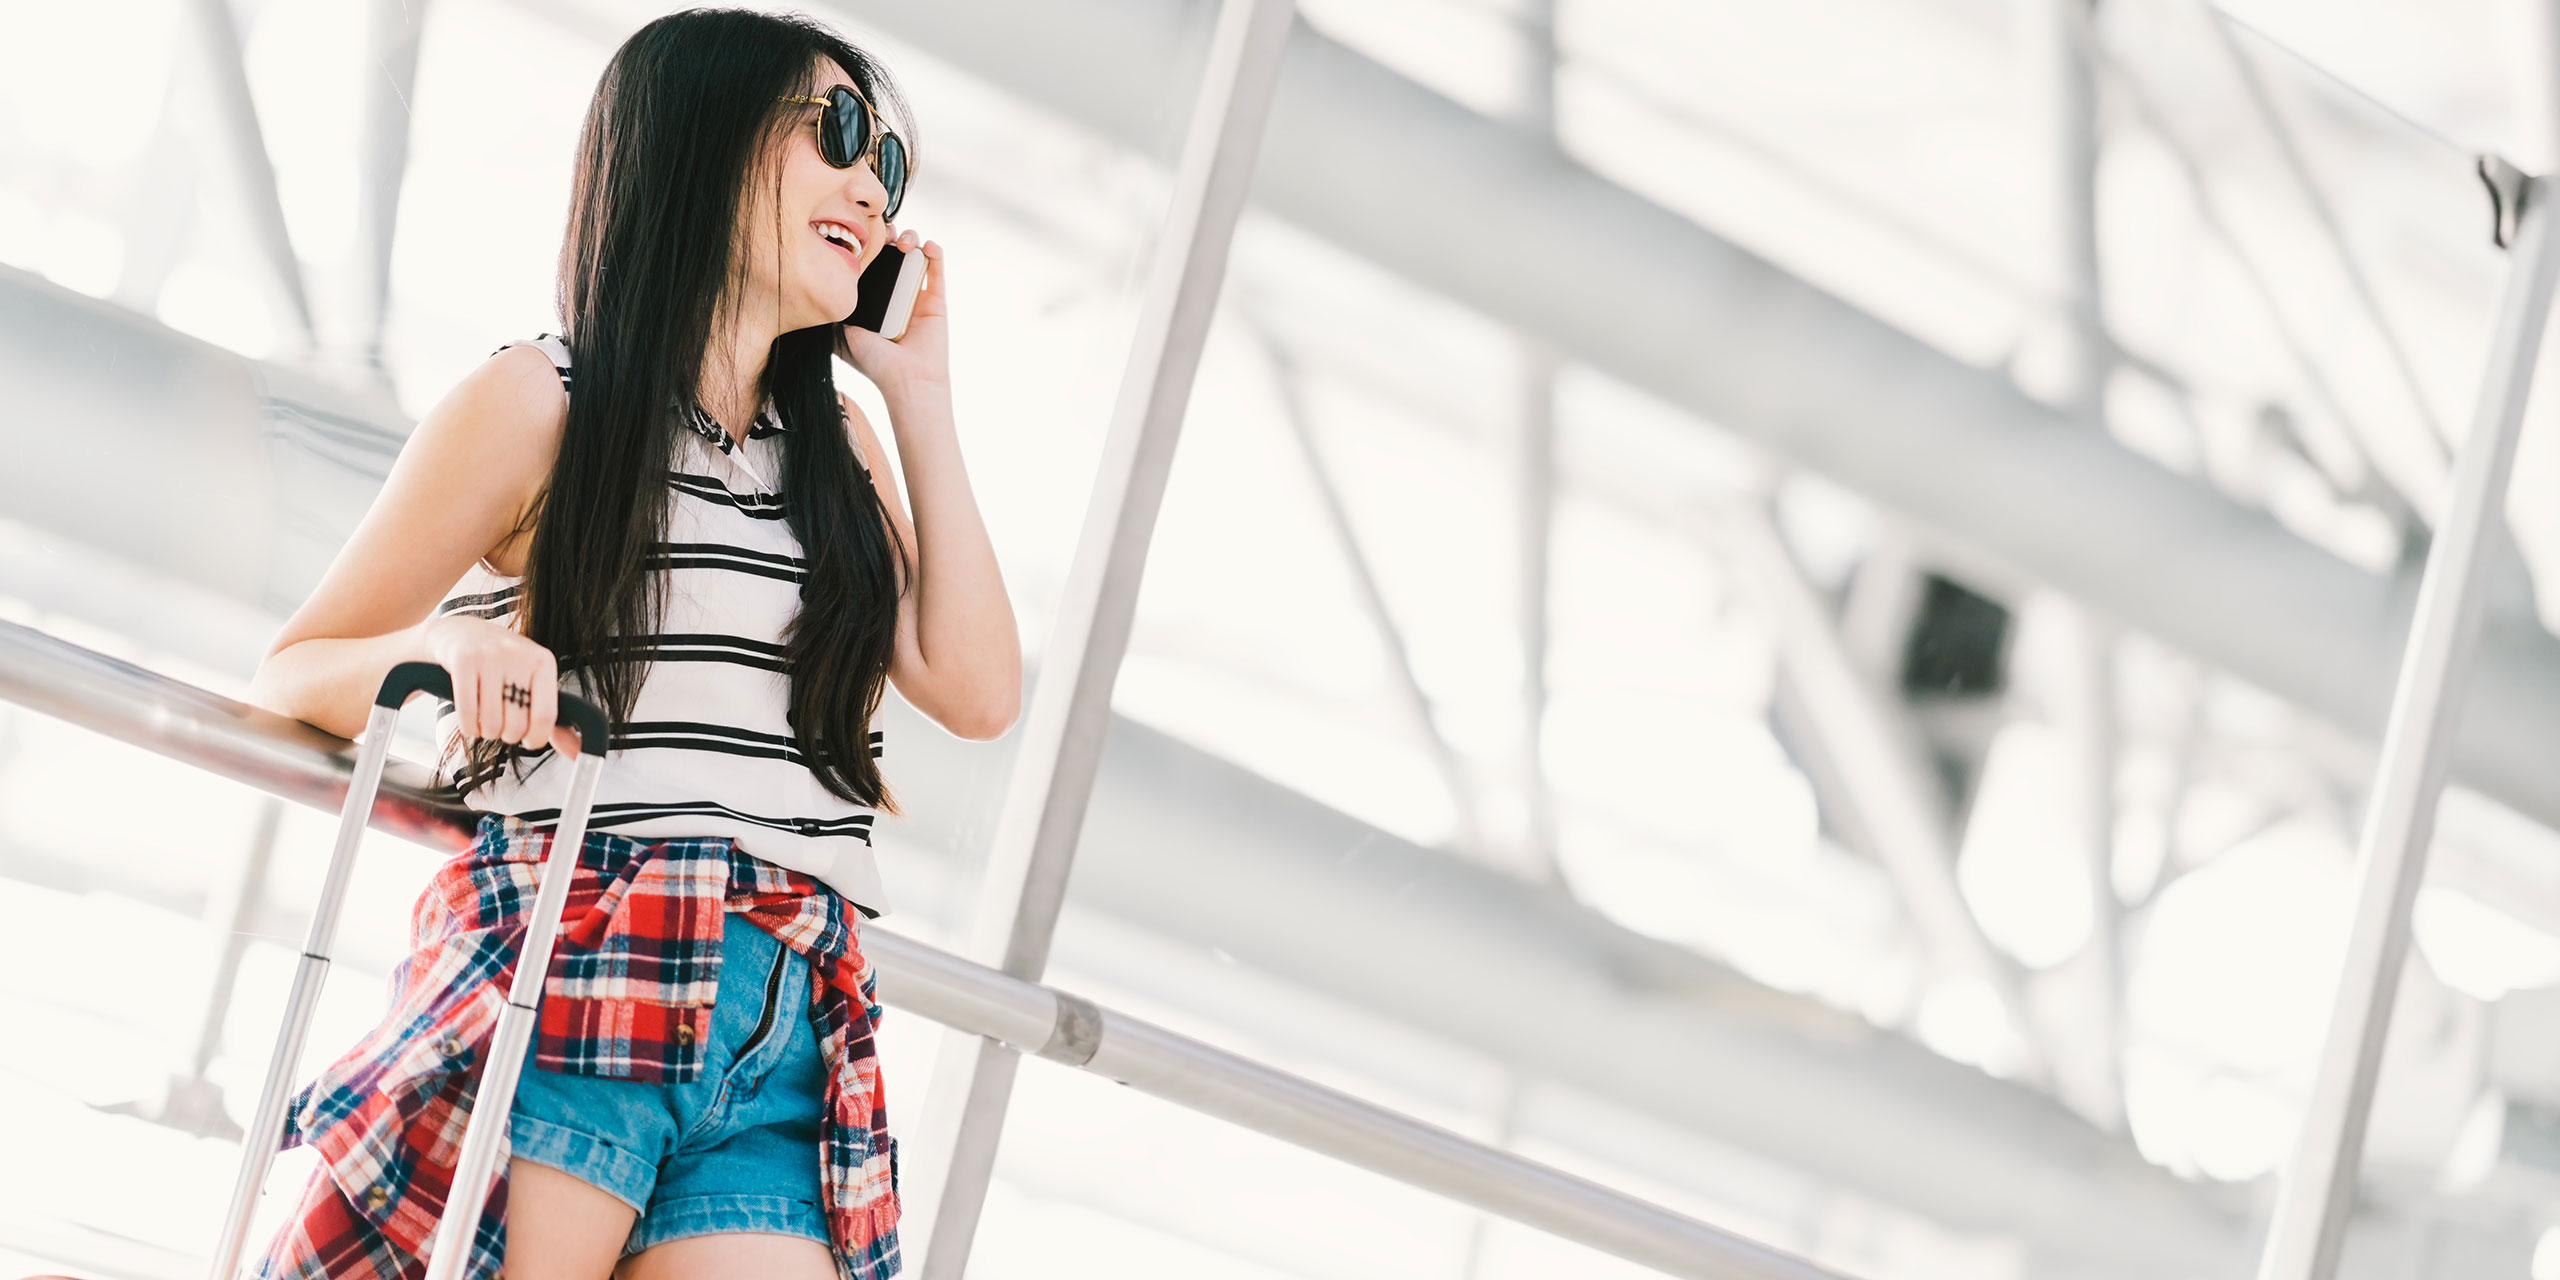 Young Girl at Airport on Phone; Courtesy of Beer5020/Shutterstock.com